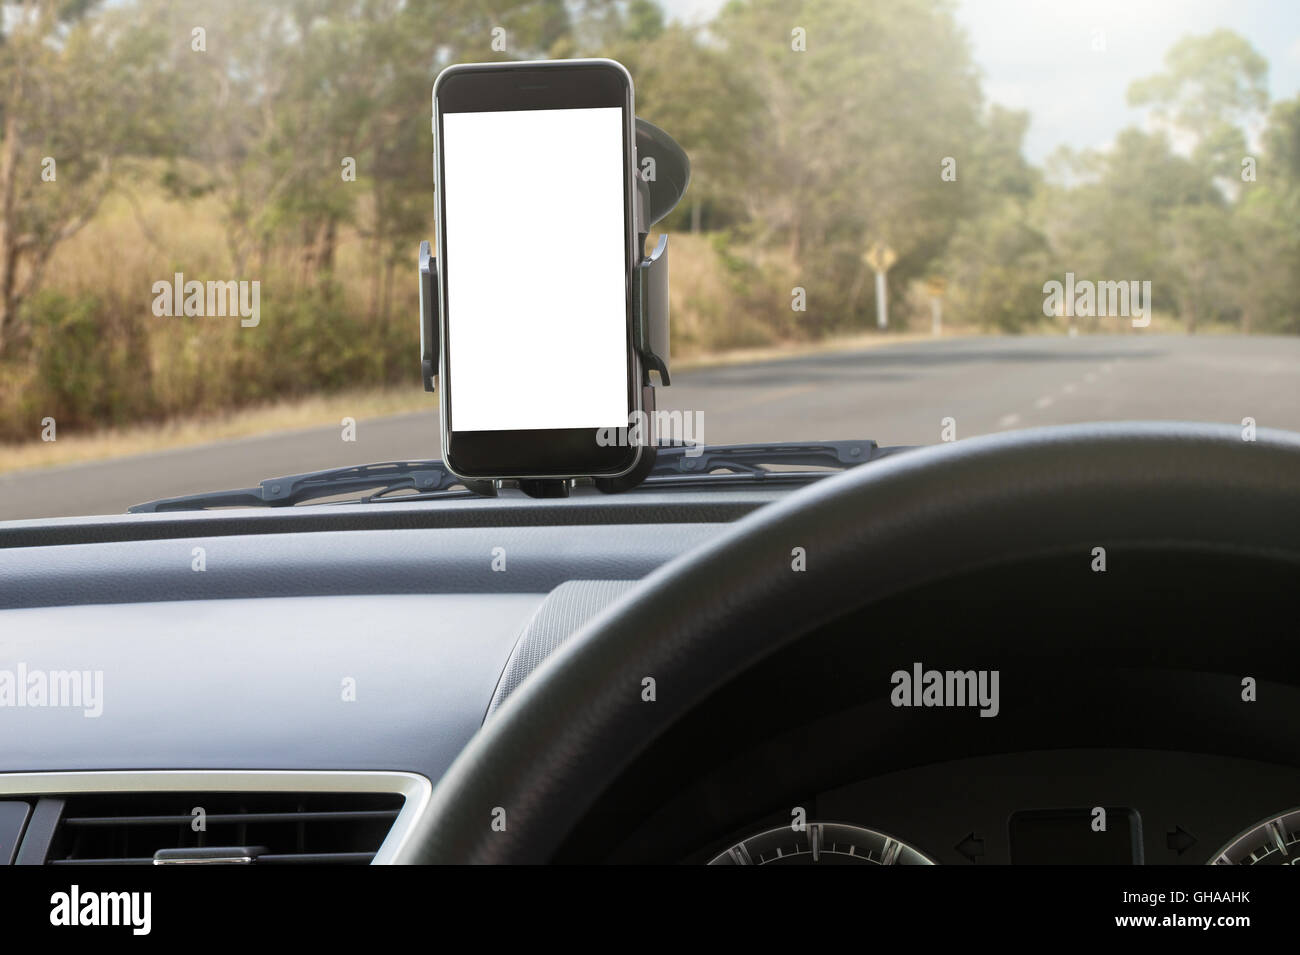 phone and mounted holder in car on rural road - Stock Image